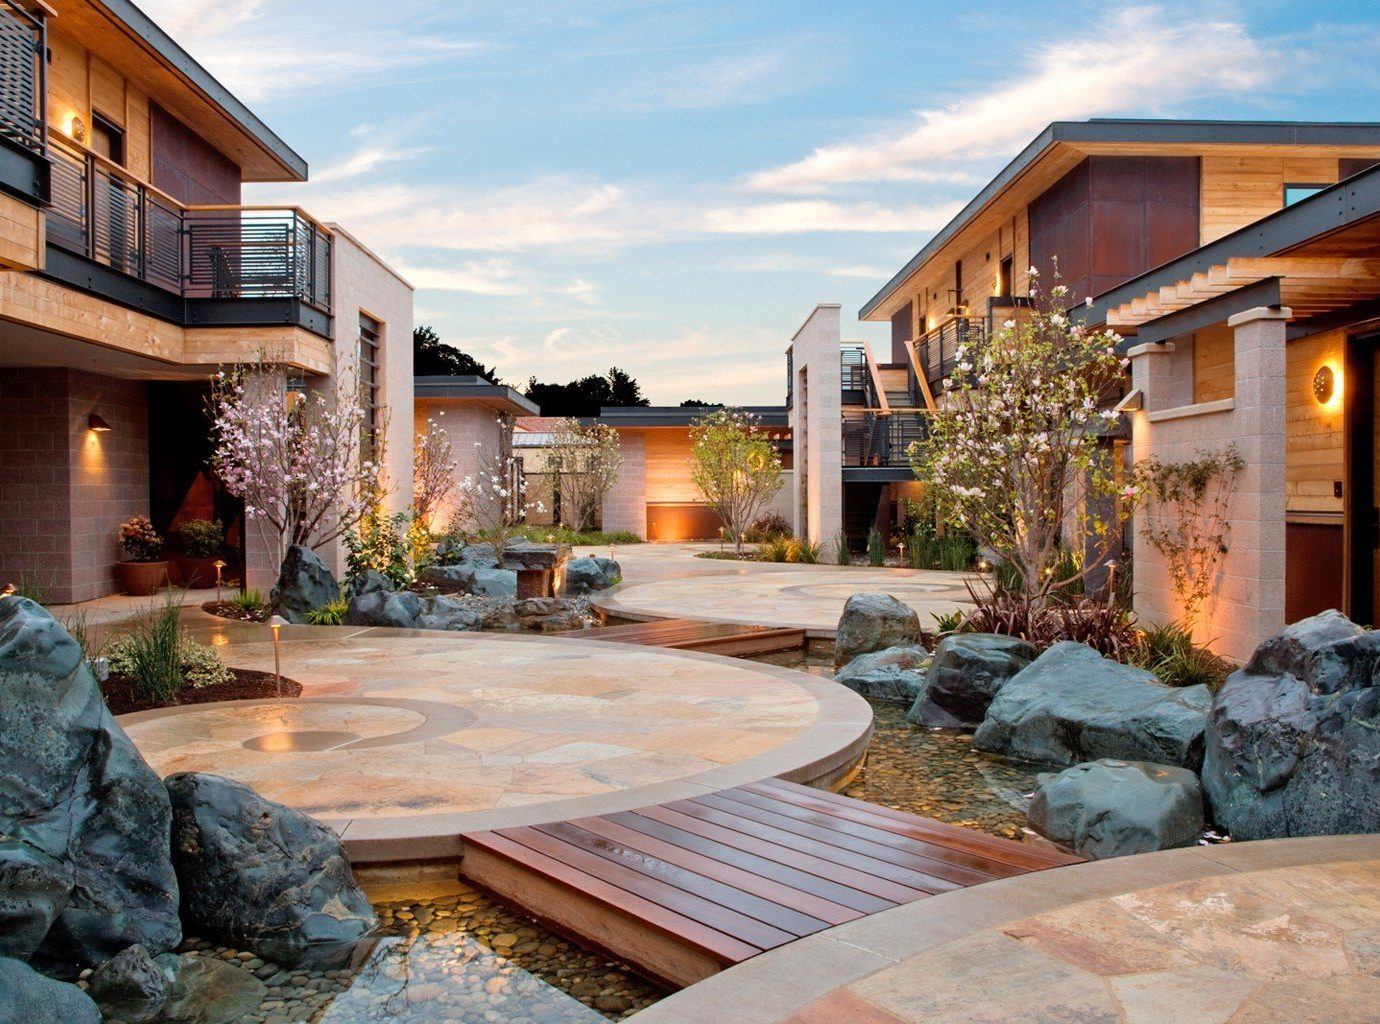 Hotels building outdoor sky property estate home house backyard rock Courtyard real estate residential area facade yard landscape swimming pool stone Villa mansion outdoor structure cottage landscaping condominium Resort Patio paving